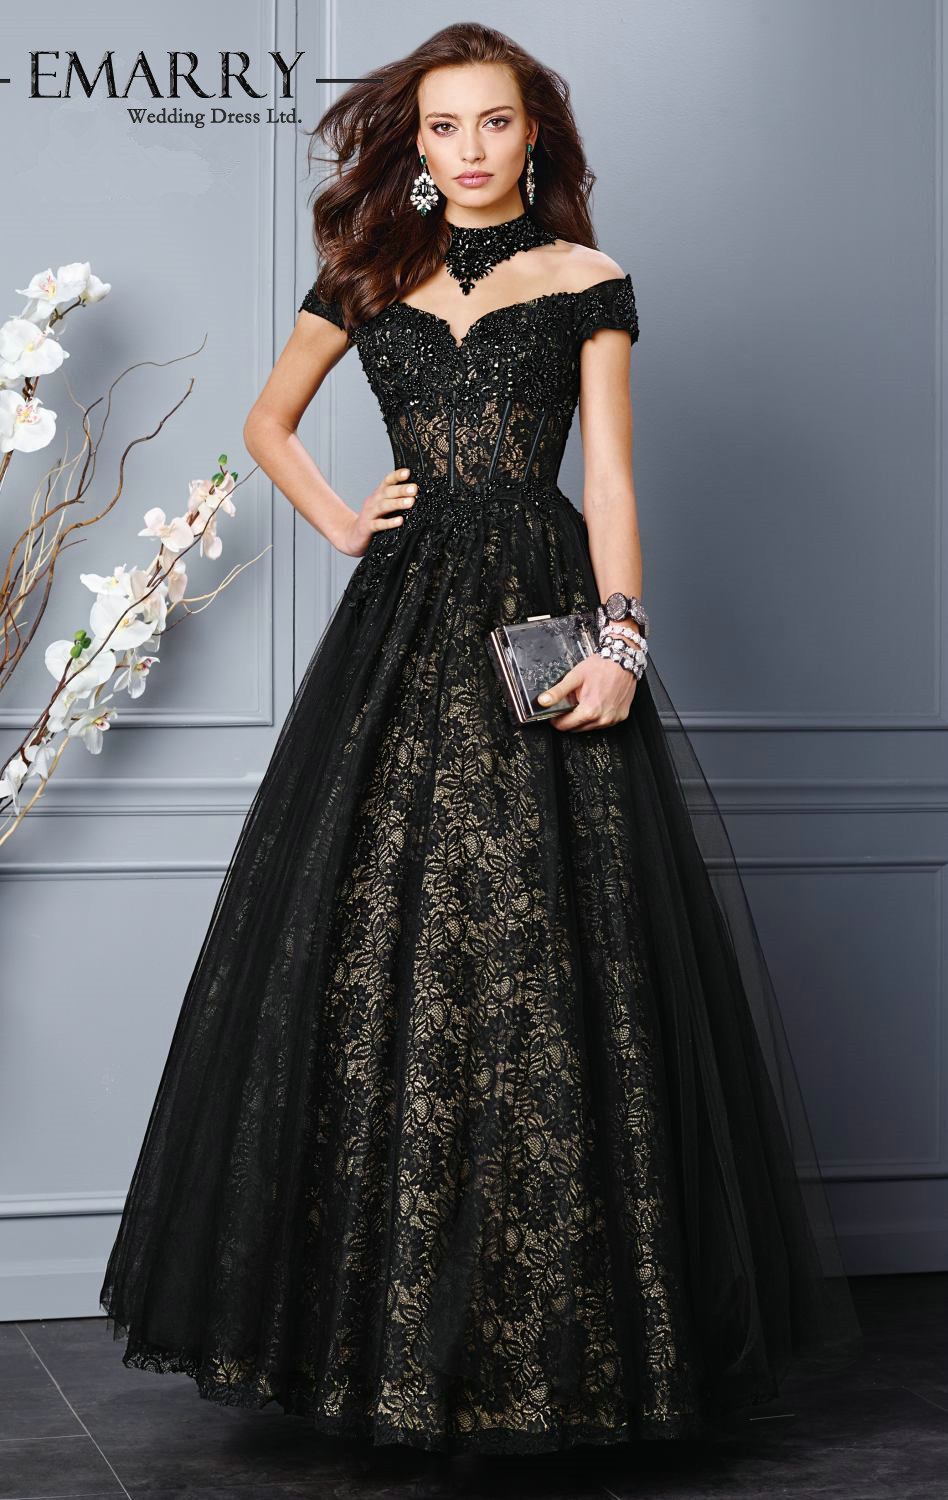 46693404c35 A 136 On Sale Ball Gown Black Lace Evening Gowns 2015 Sweetheart Cap Sleeves  Beaded Elegant Long Evening Dress To Party -in Evening Dresses from  Weddings ...